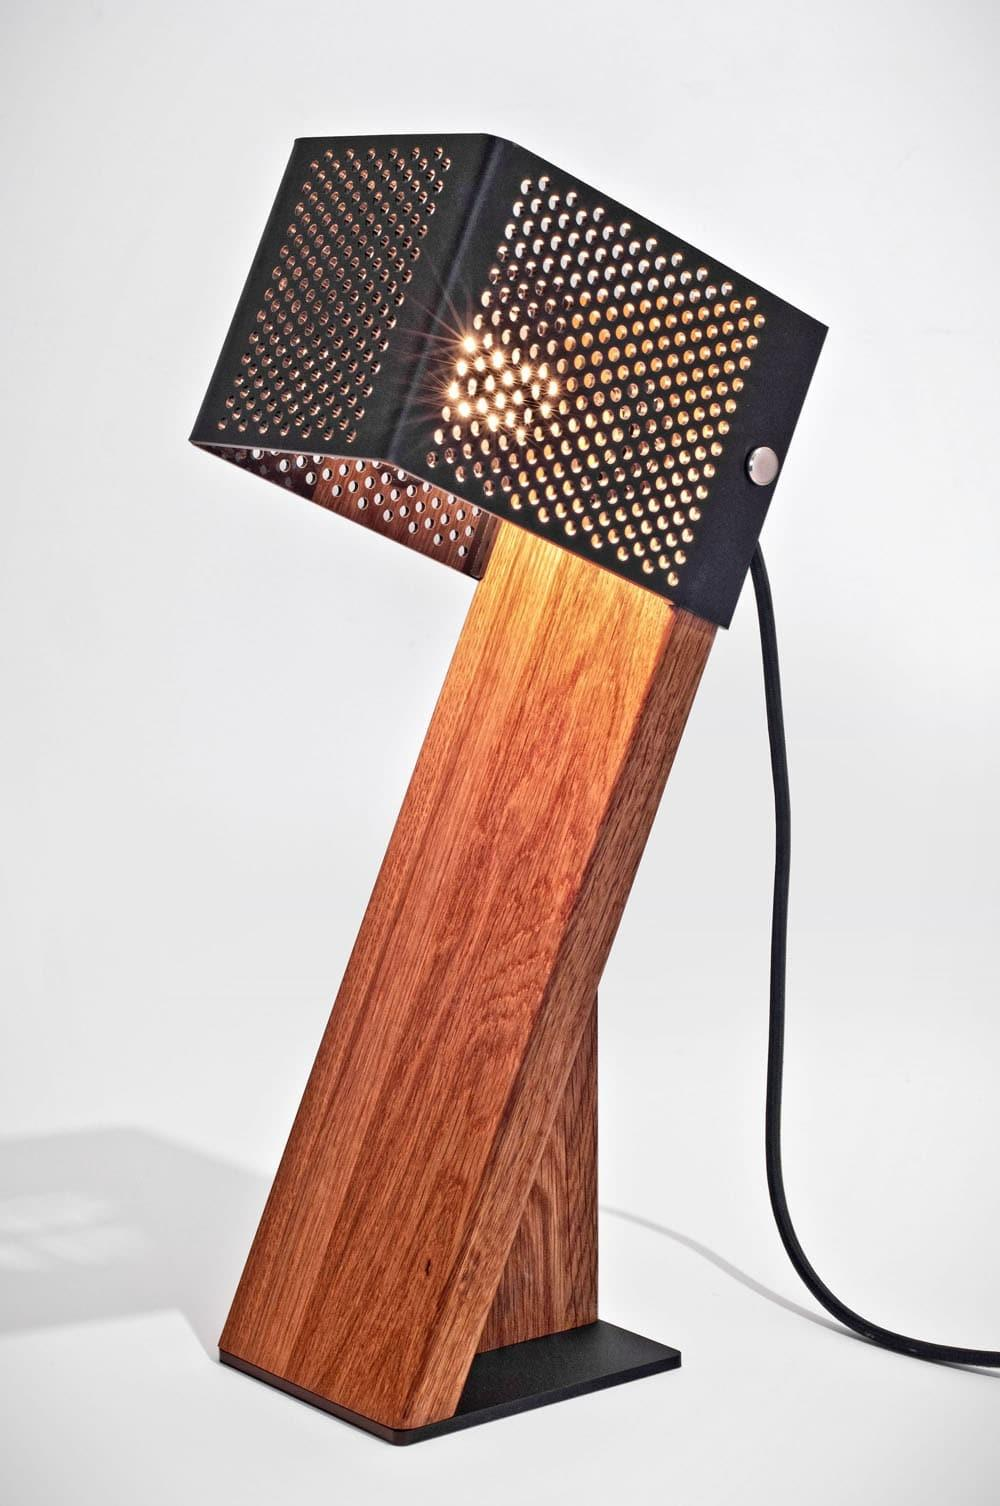 Handcrafted Oblic Wood Table Lamp Lights